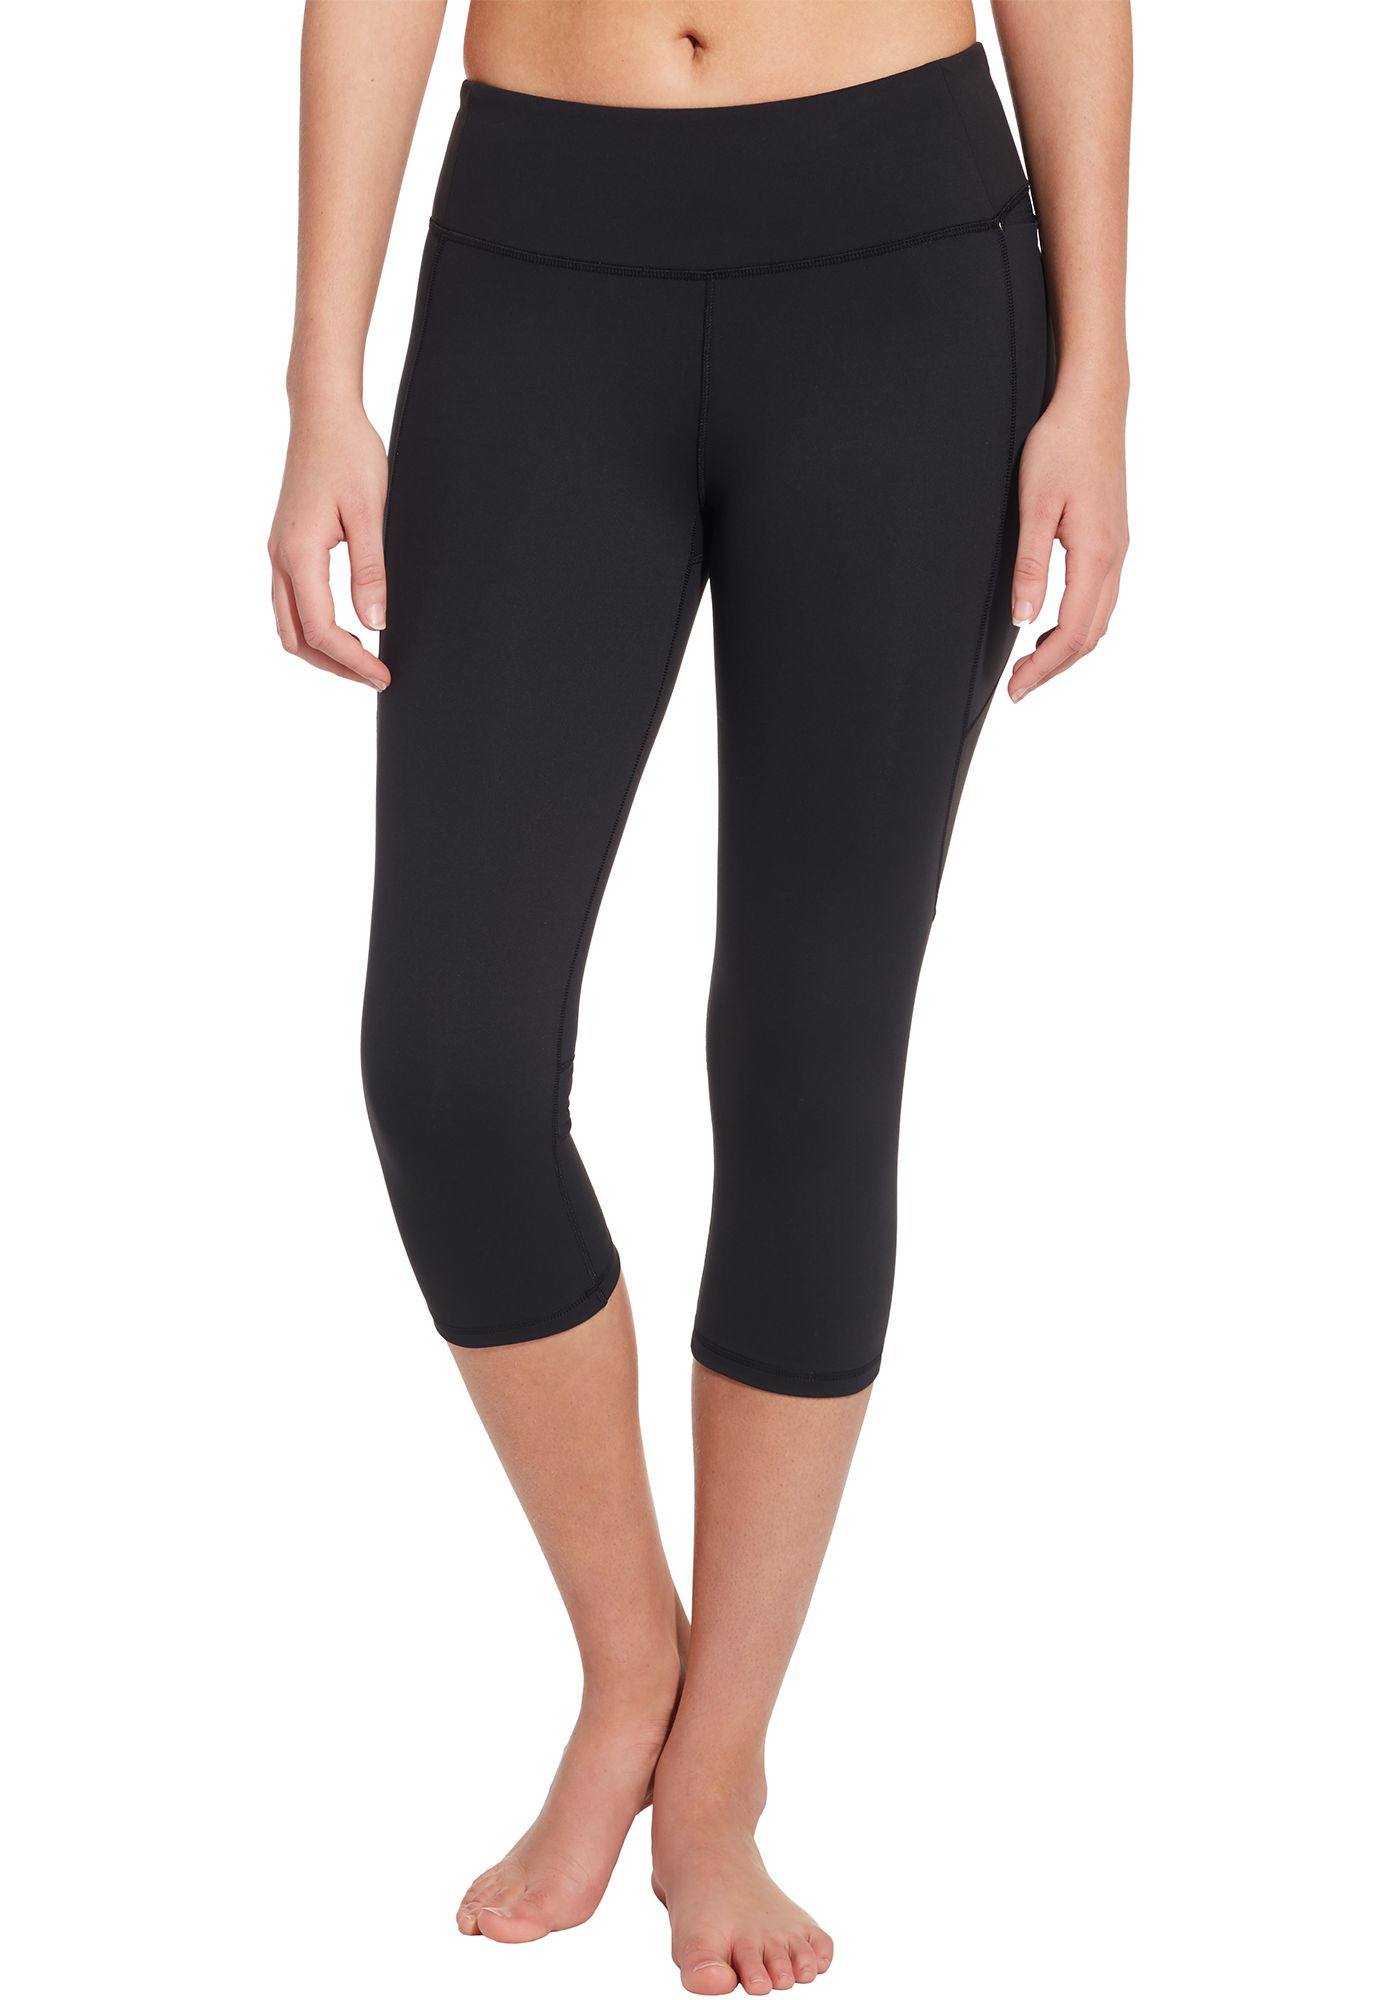 CALIA by Carrie Underwood Women's Energize Crop Tights